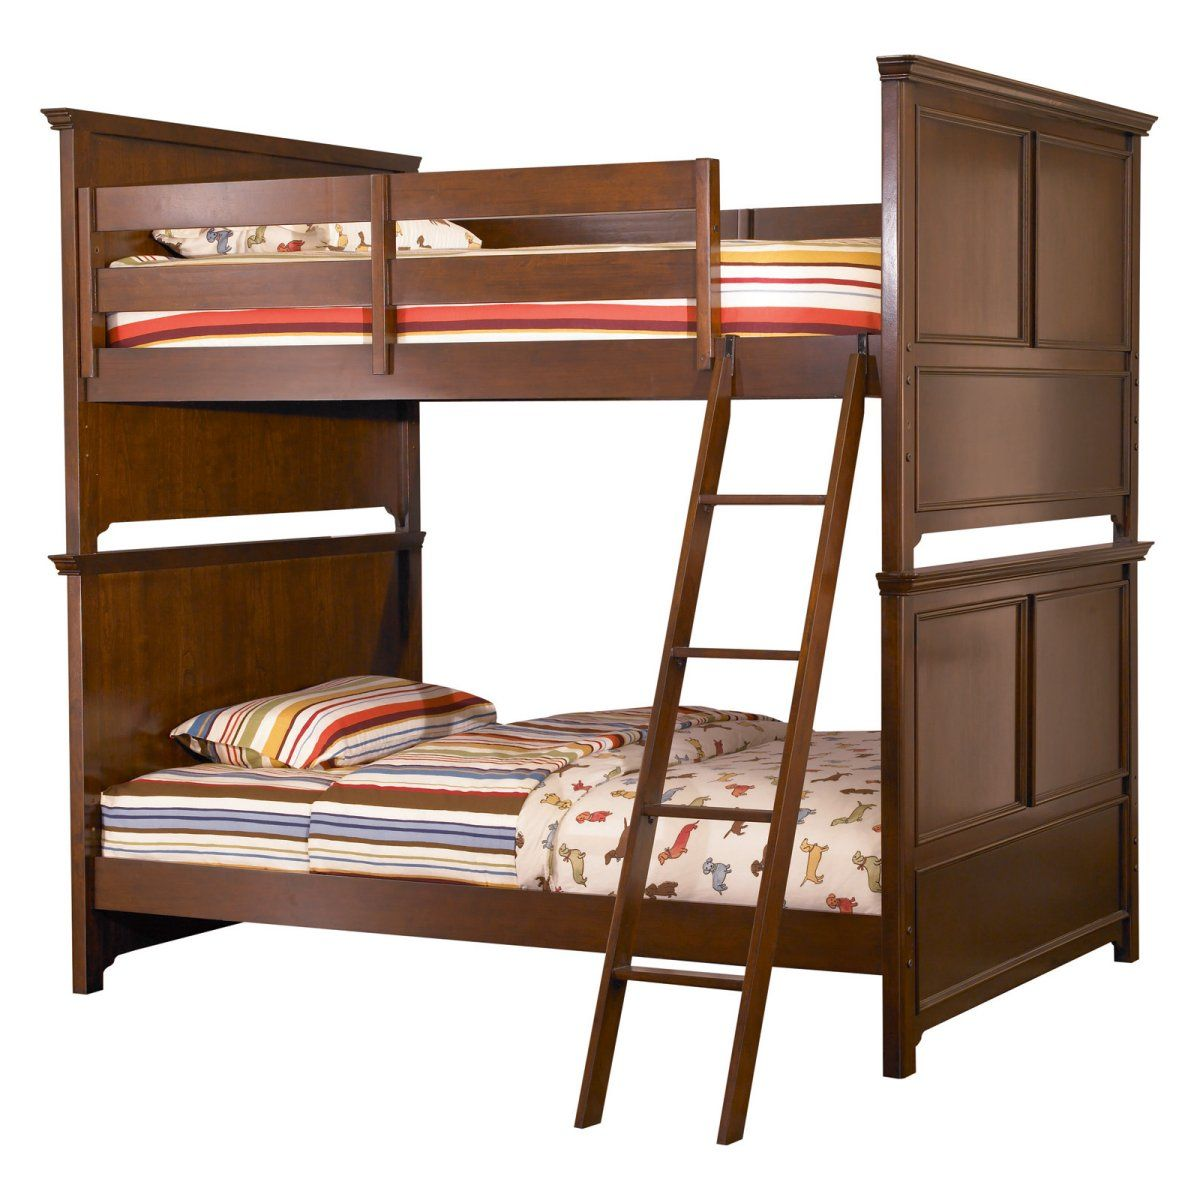 Loft bed with slide and storage  I am thinking a set of Full over Full bunk beds in the spare room